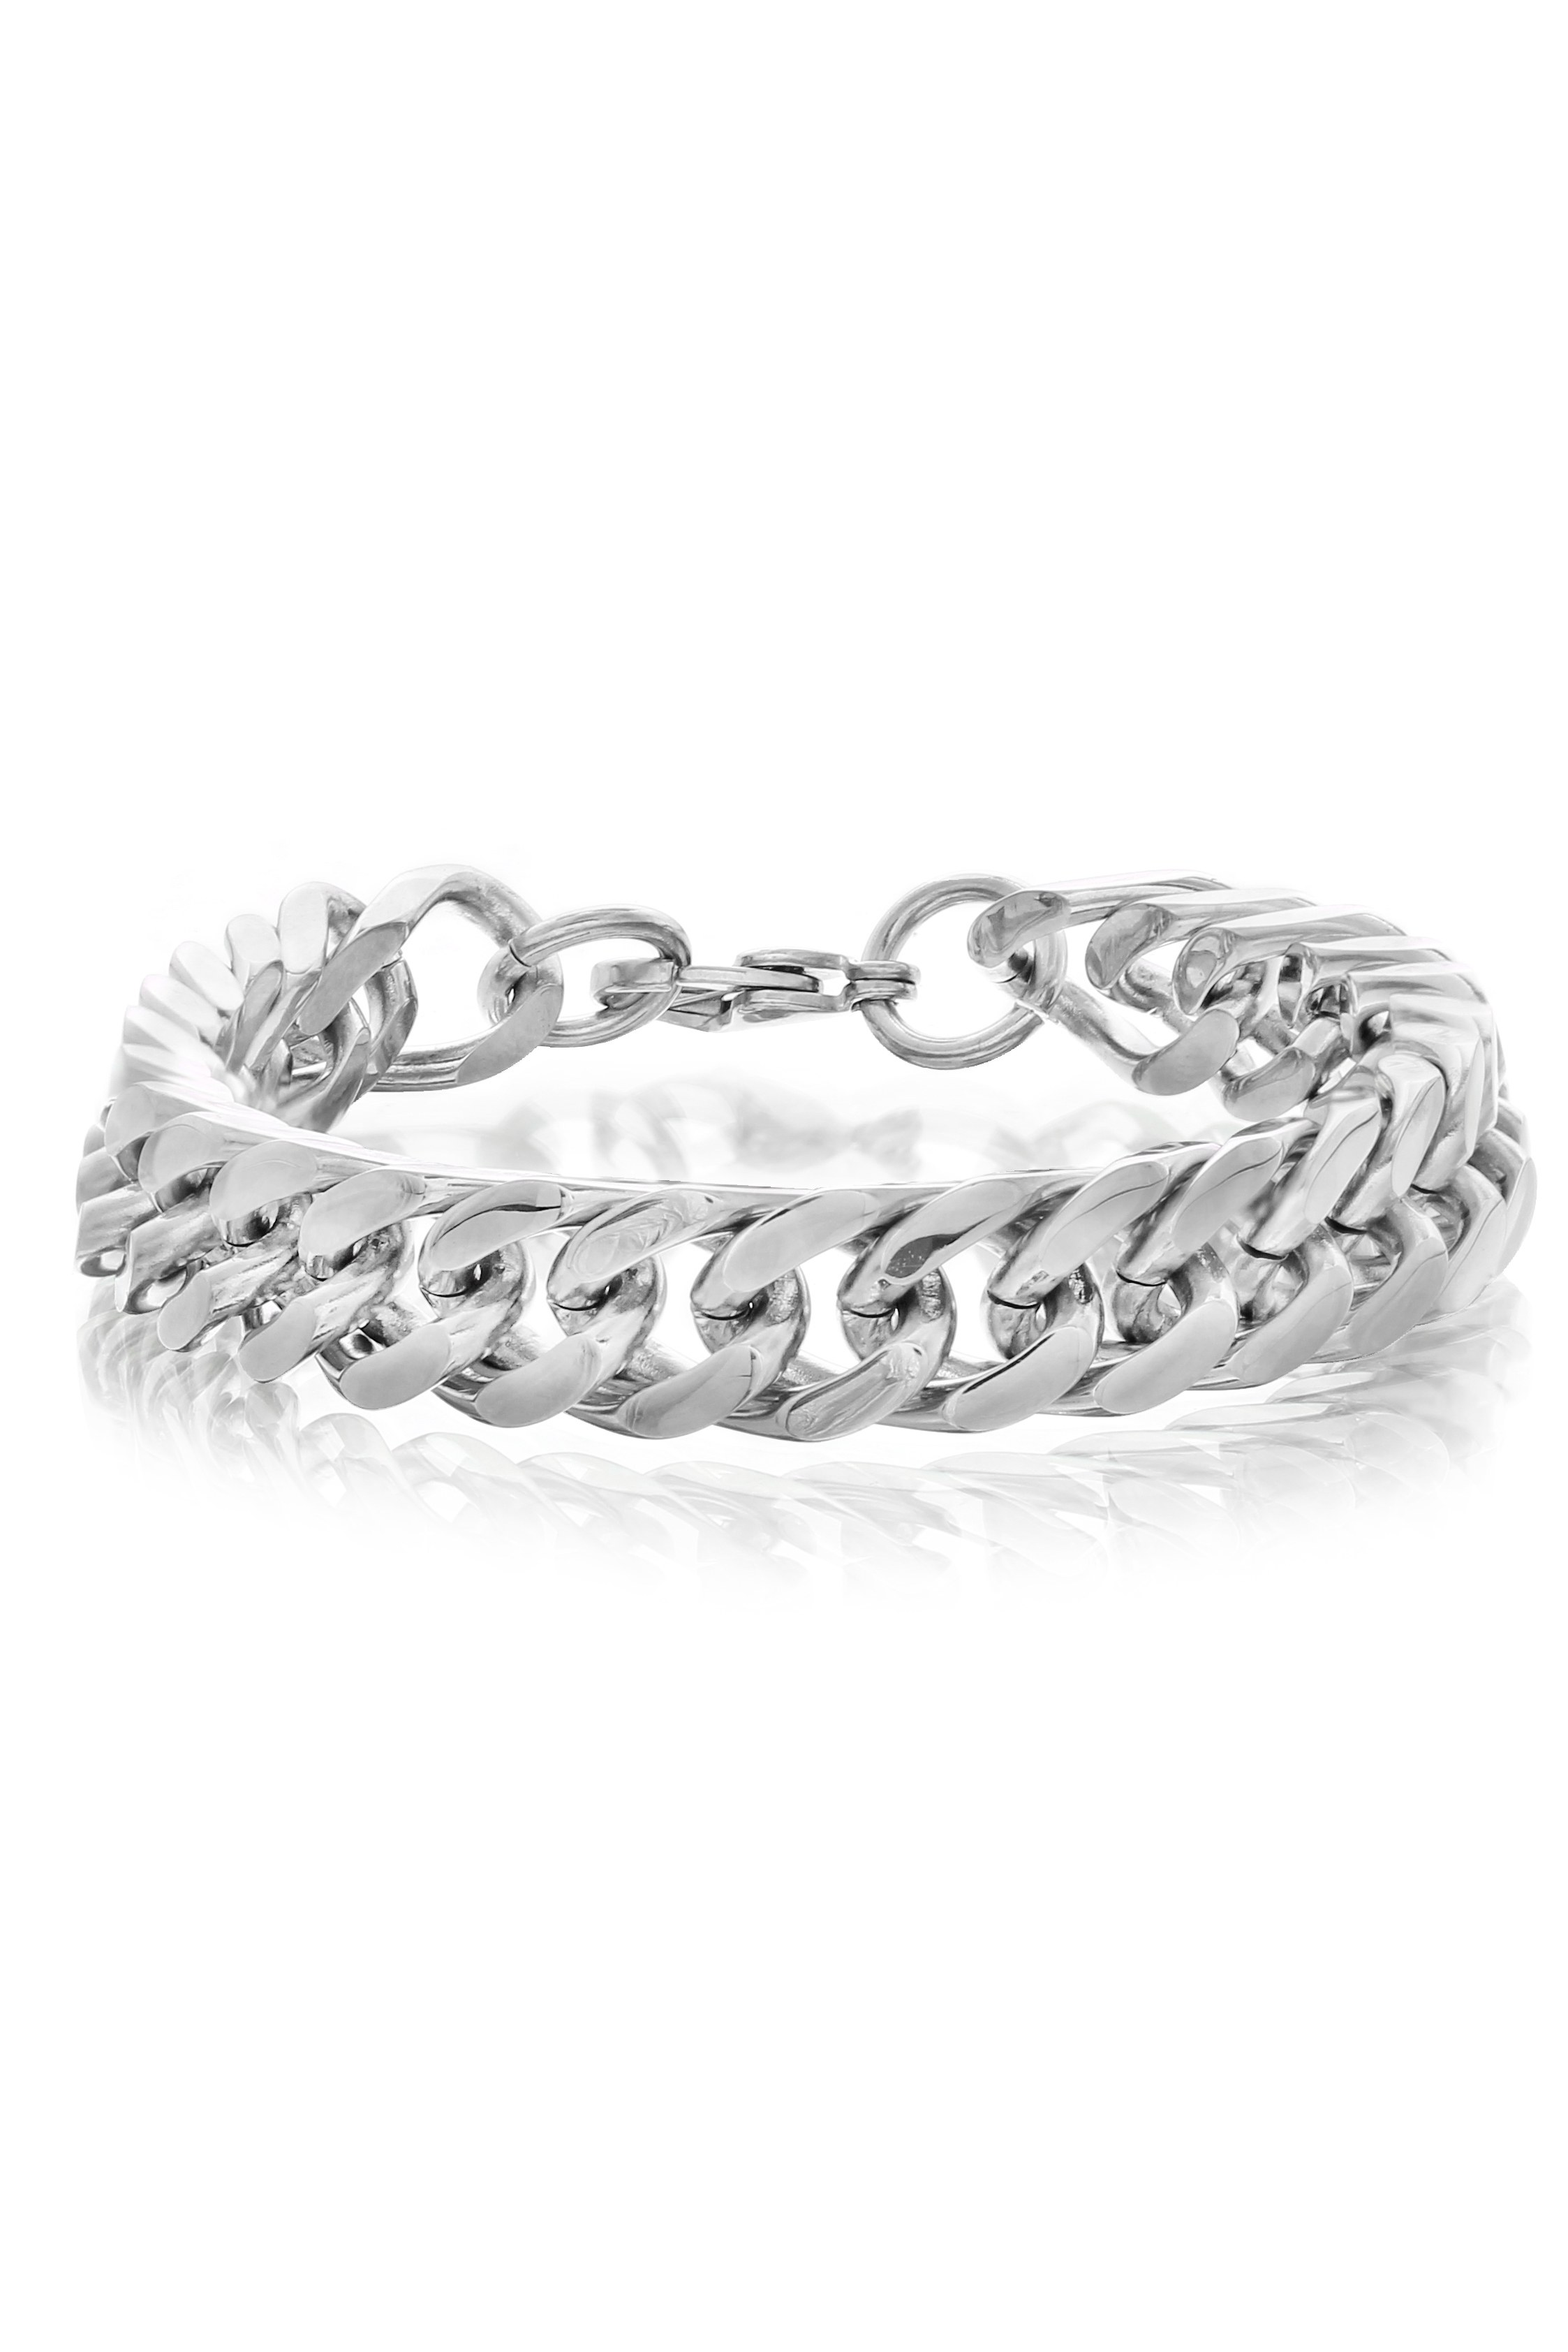 Stainless Steel curb Link Bracelet For Men available at Craftsvilla for Rs.3849